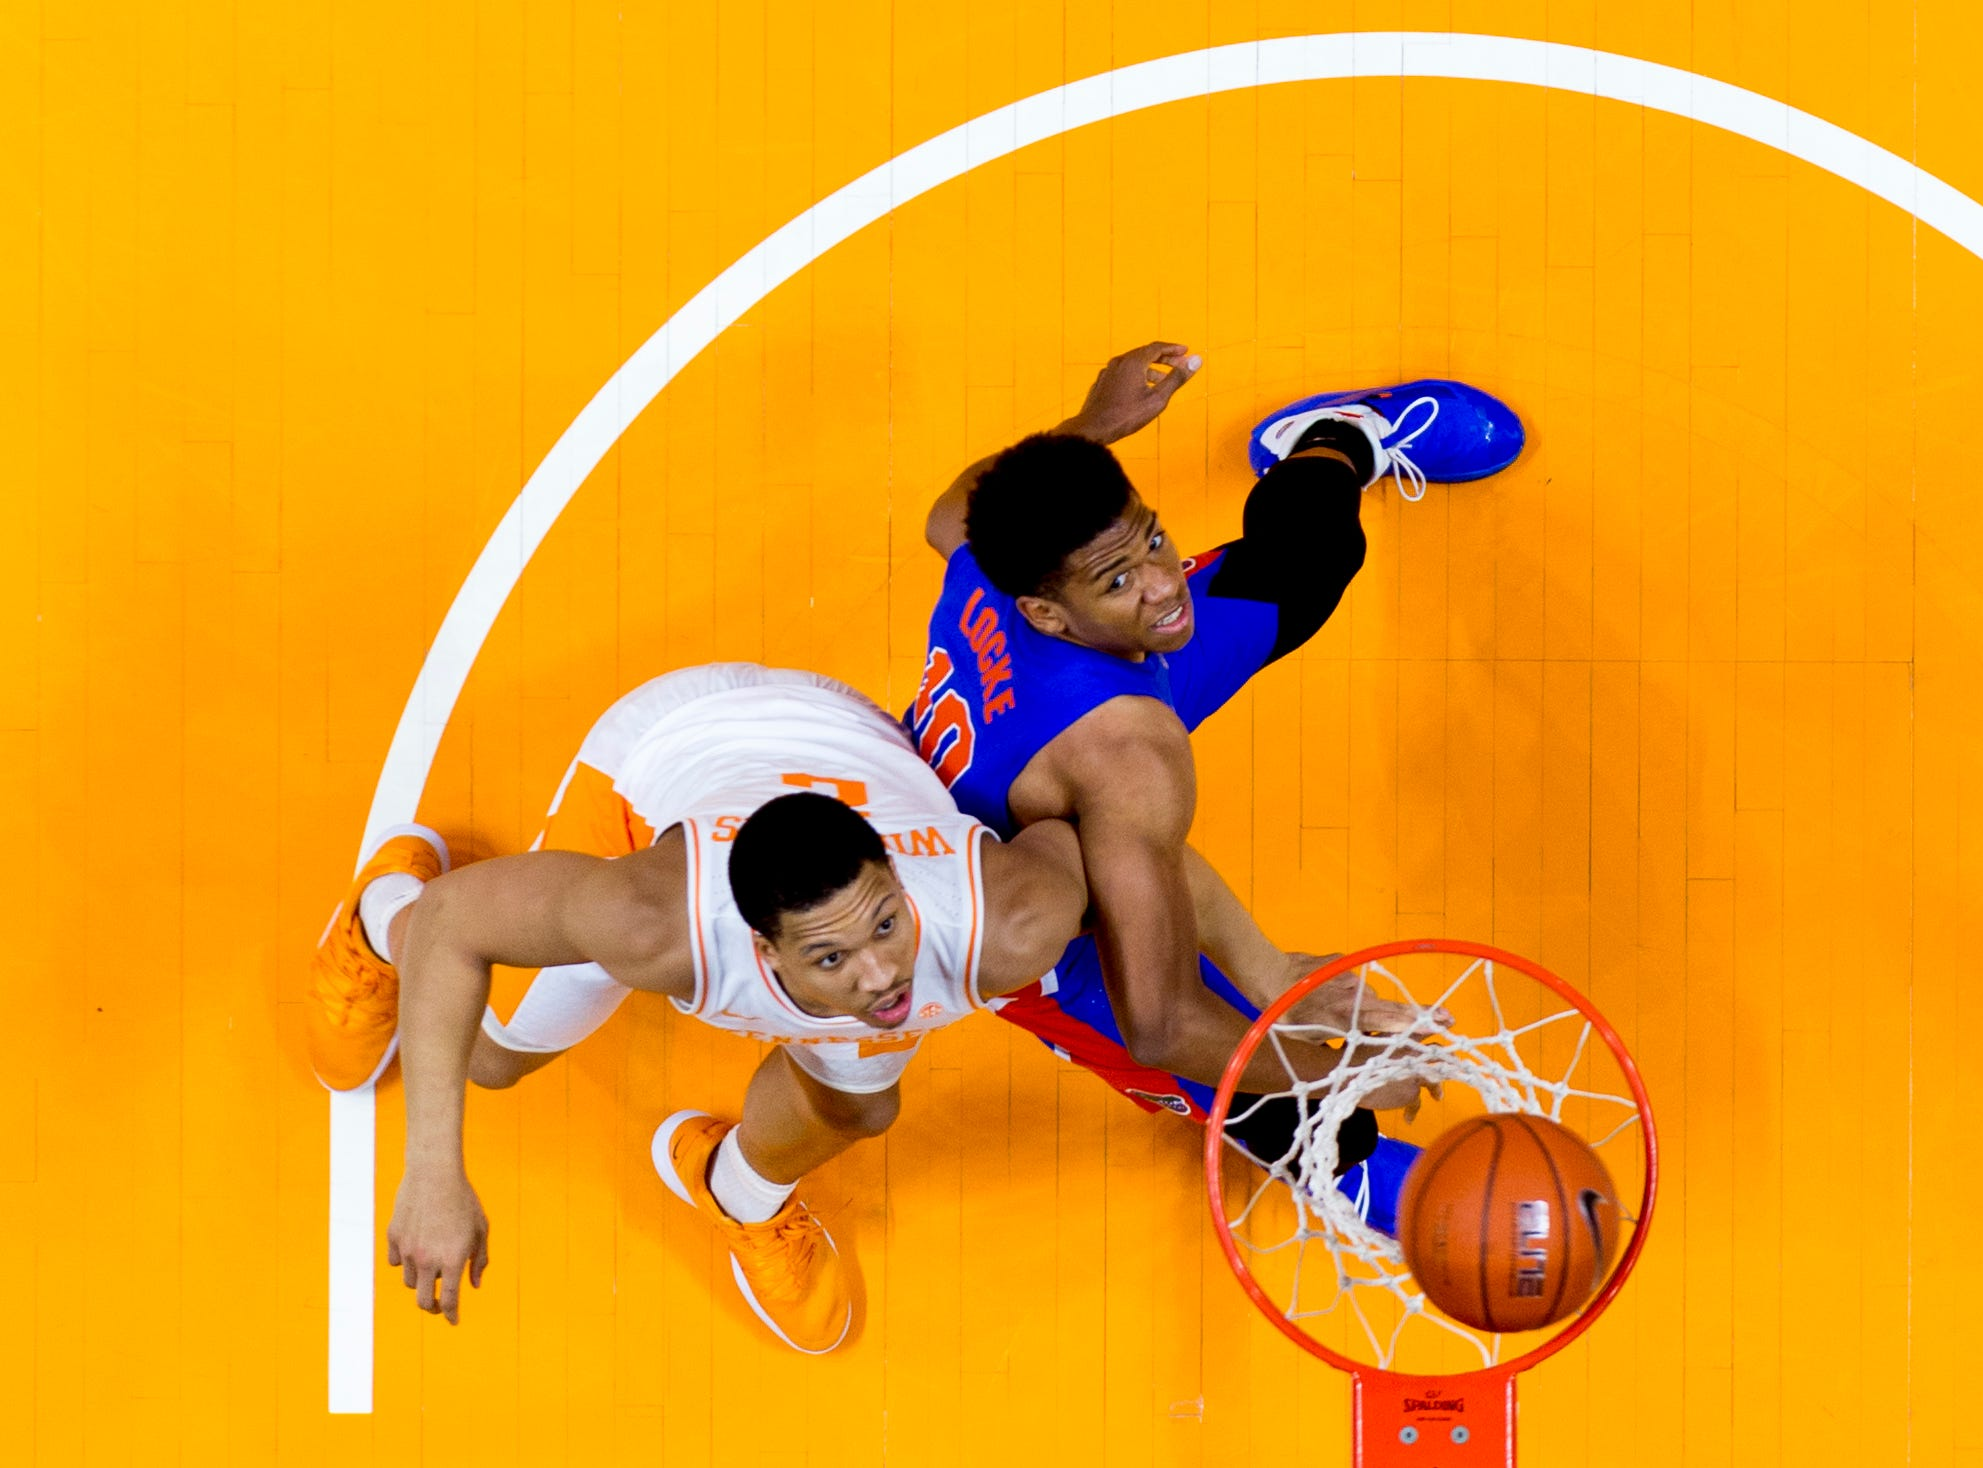 Tennessee forward Grant Williams (2) and Florida guard Noah Locke (10) eye the ball during a game between Tennessee and Florida at Thompson-Boling Arena in Knoxville, Tennessee on Saturday, February 9, 2019.